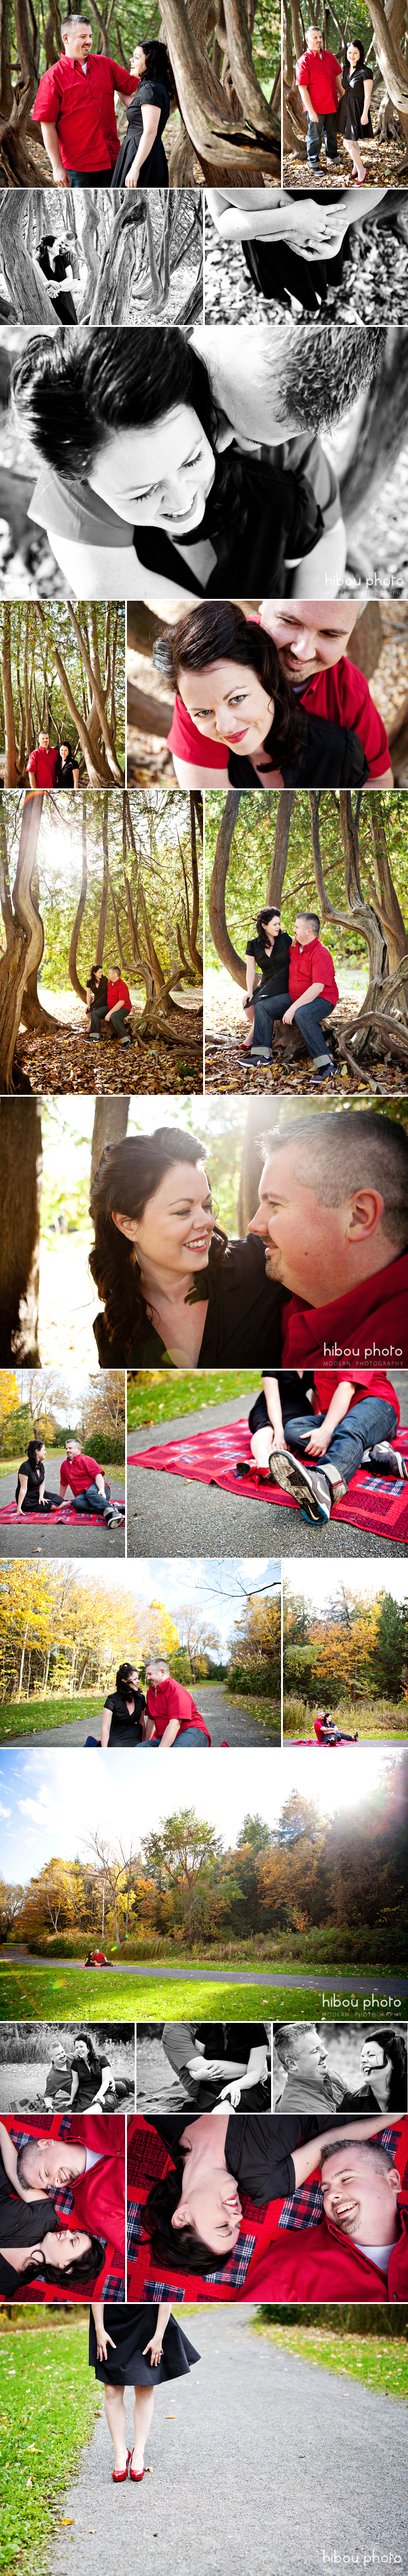 Fredericton engagement photography by hibou photo